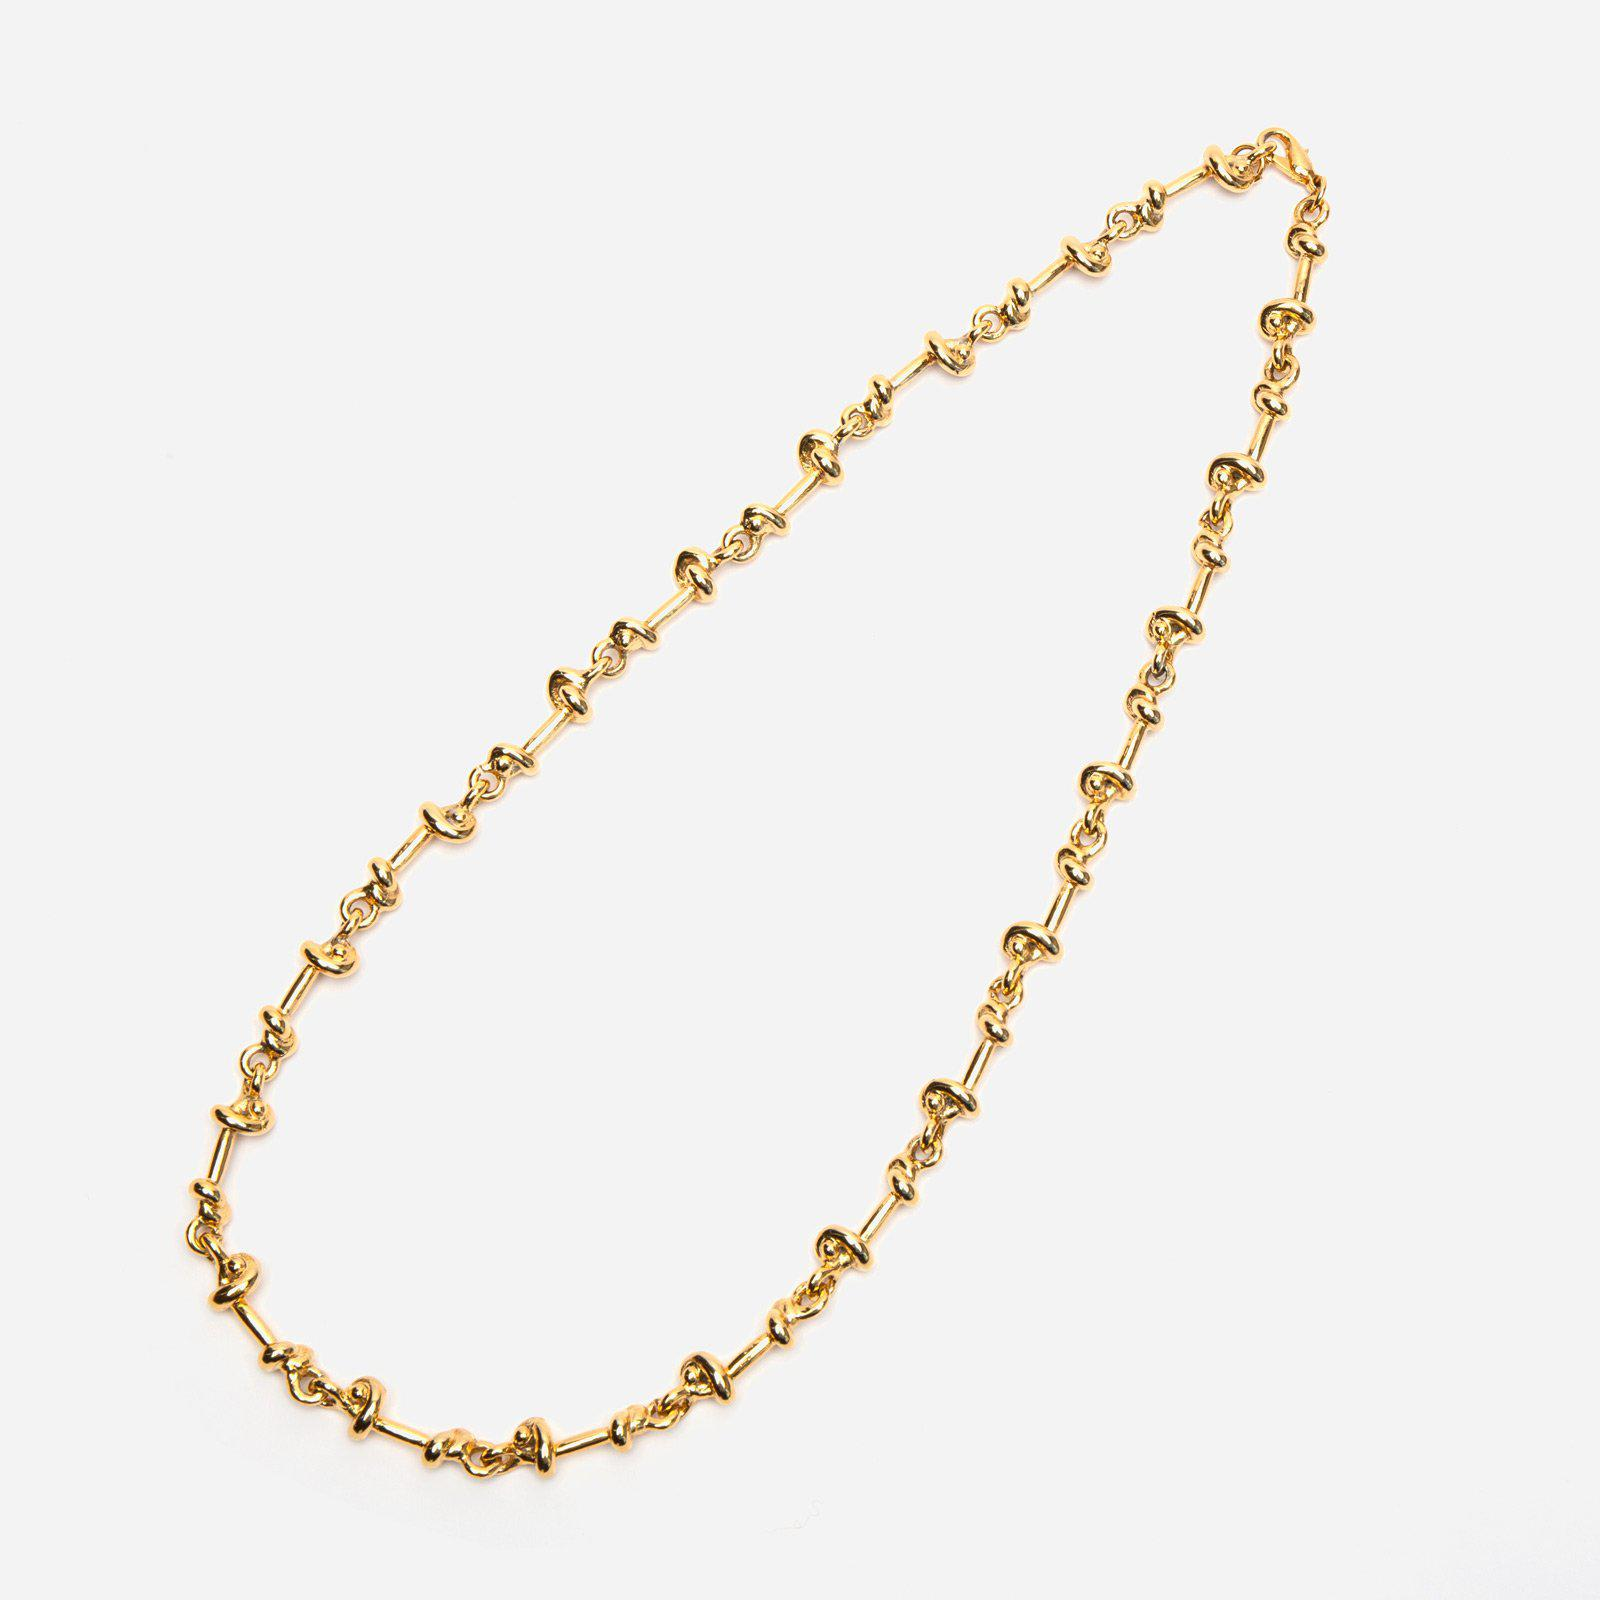 Gold Knotted Chain Necklace